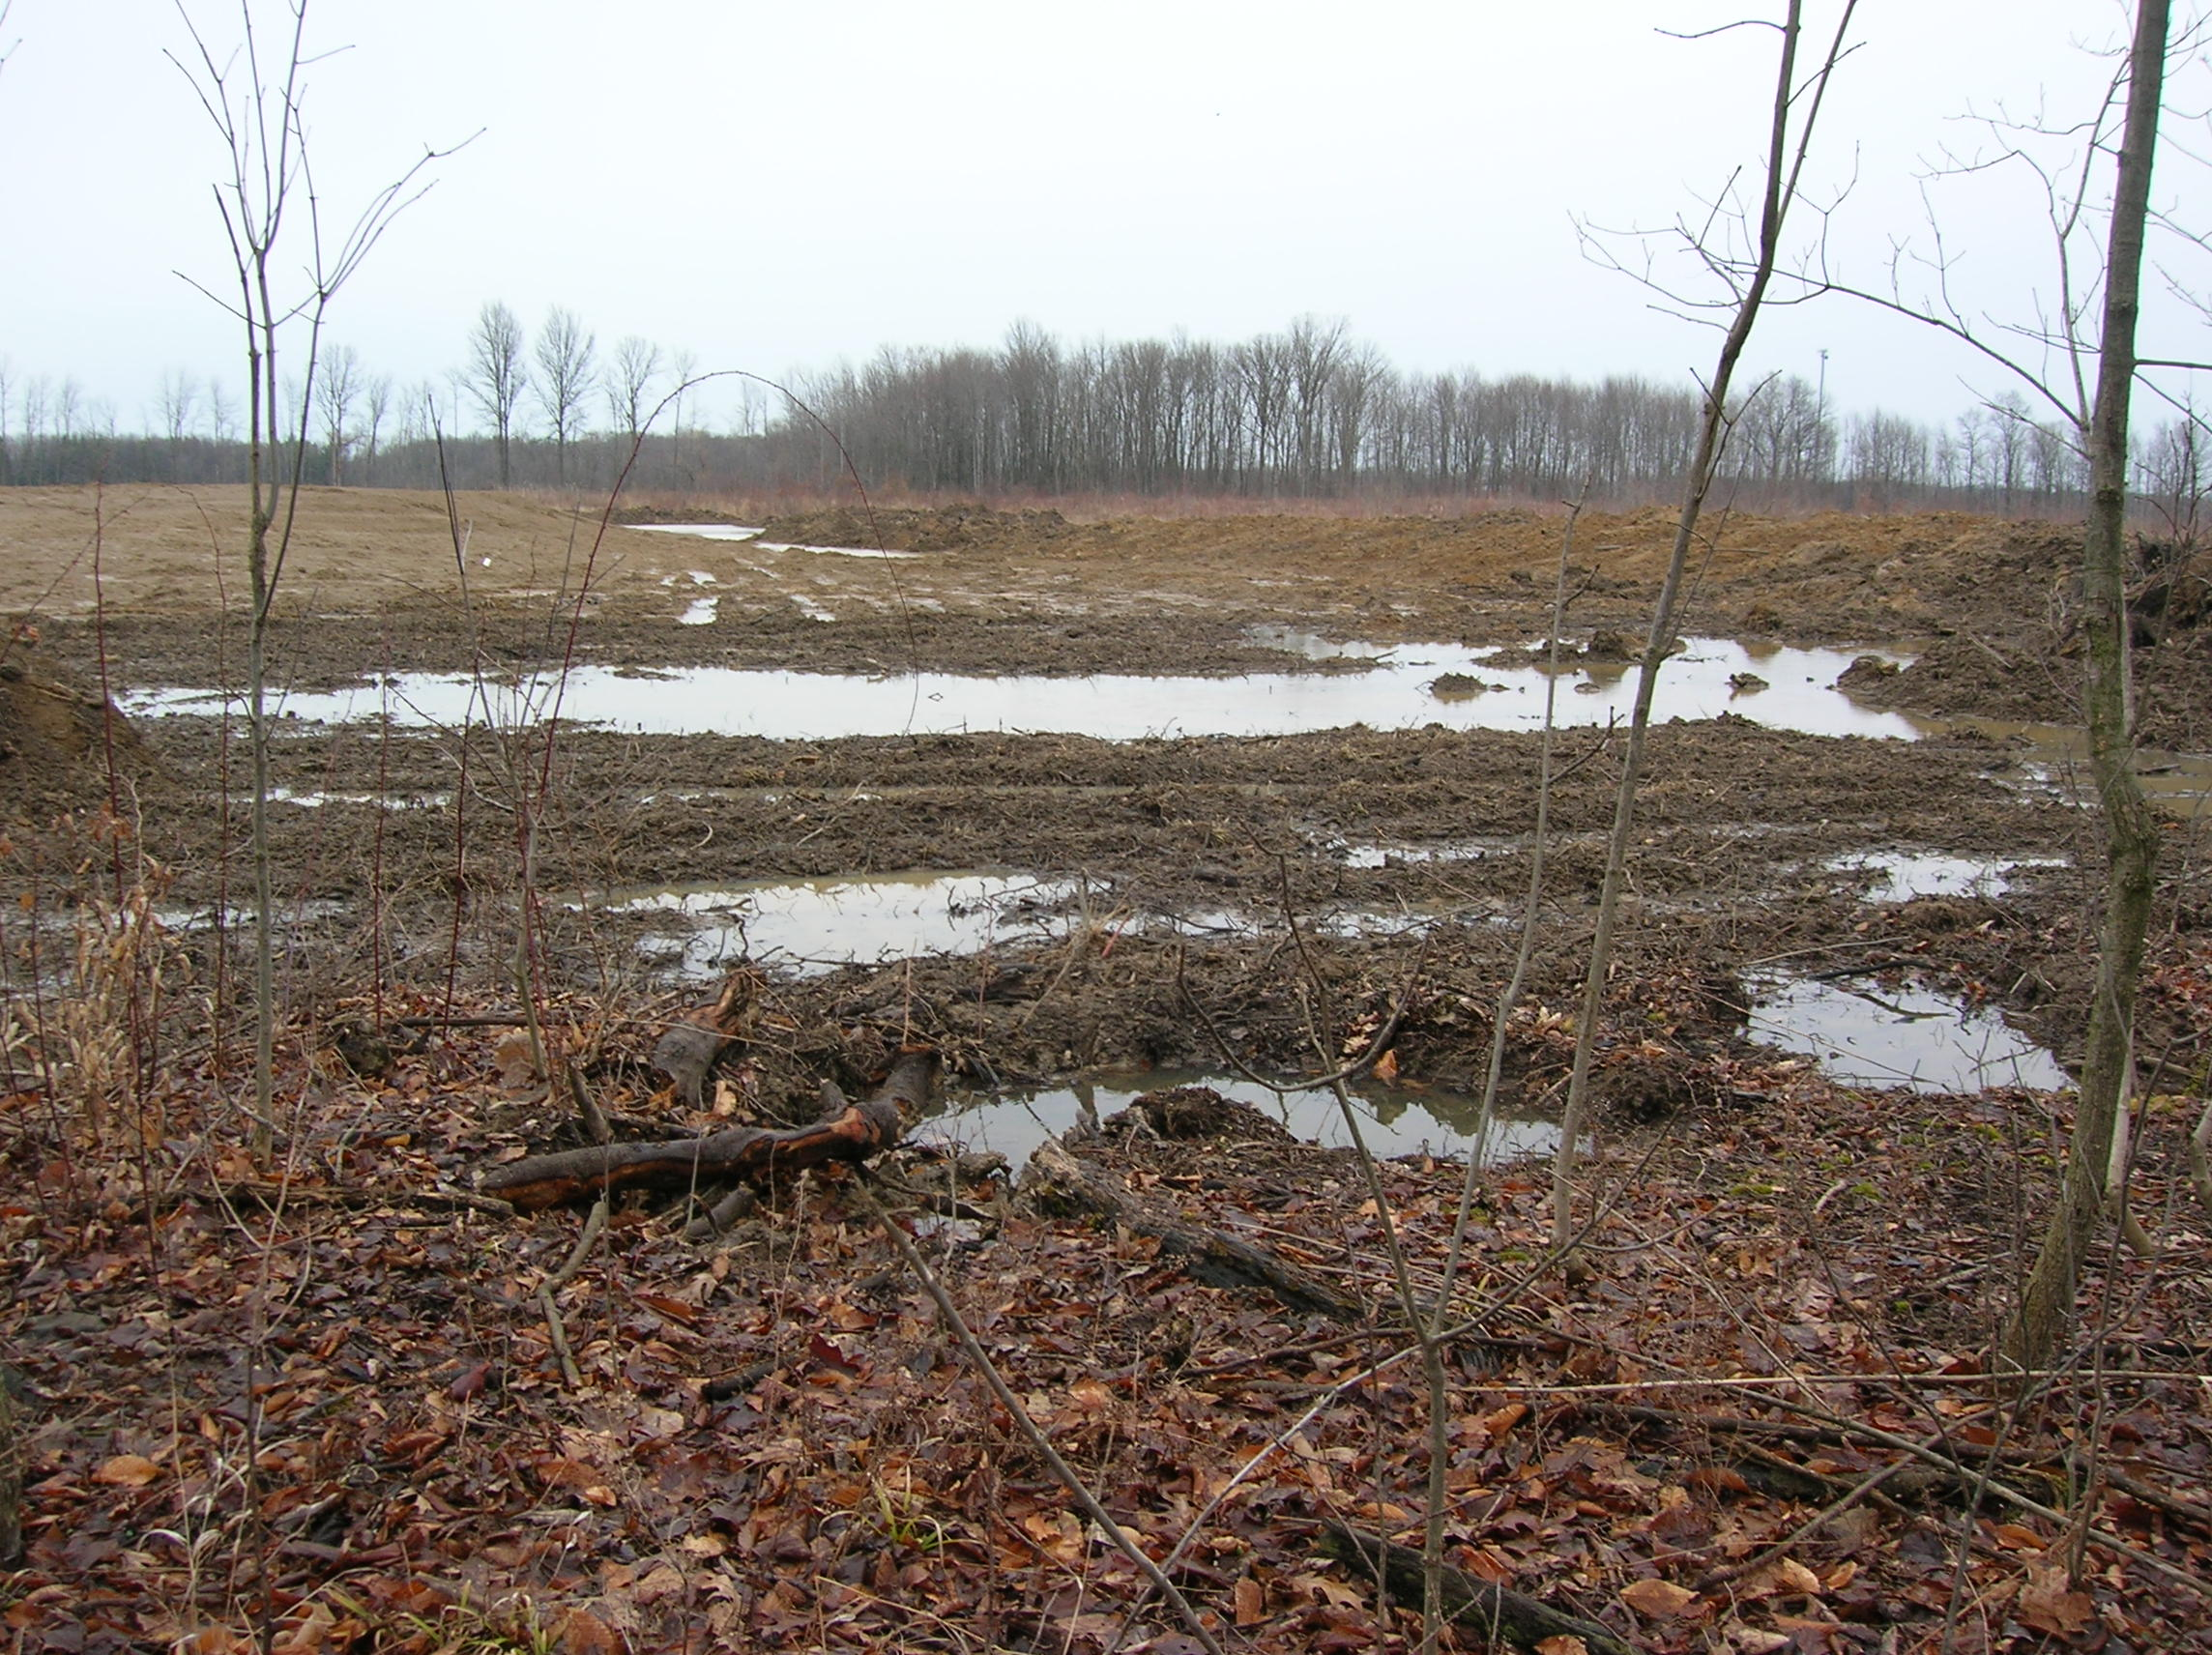 Sewage Sludge Lagoon in Pittsfield from outside City: Don